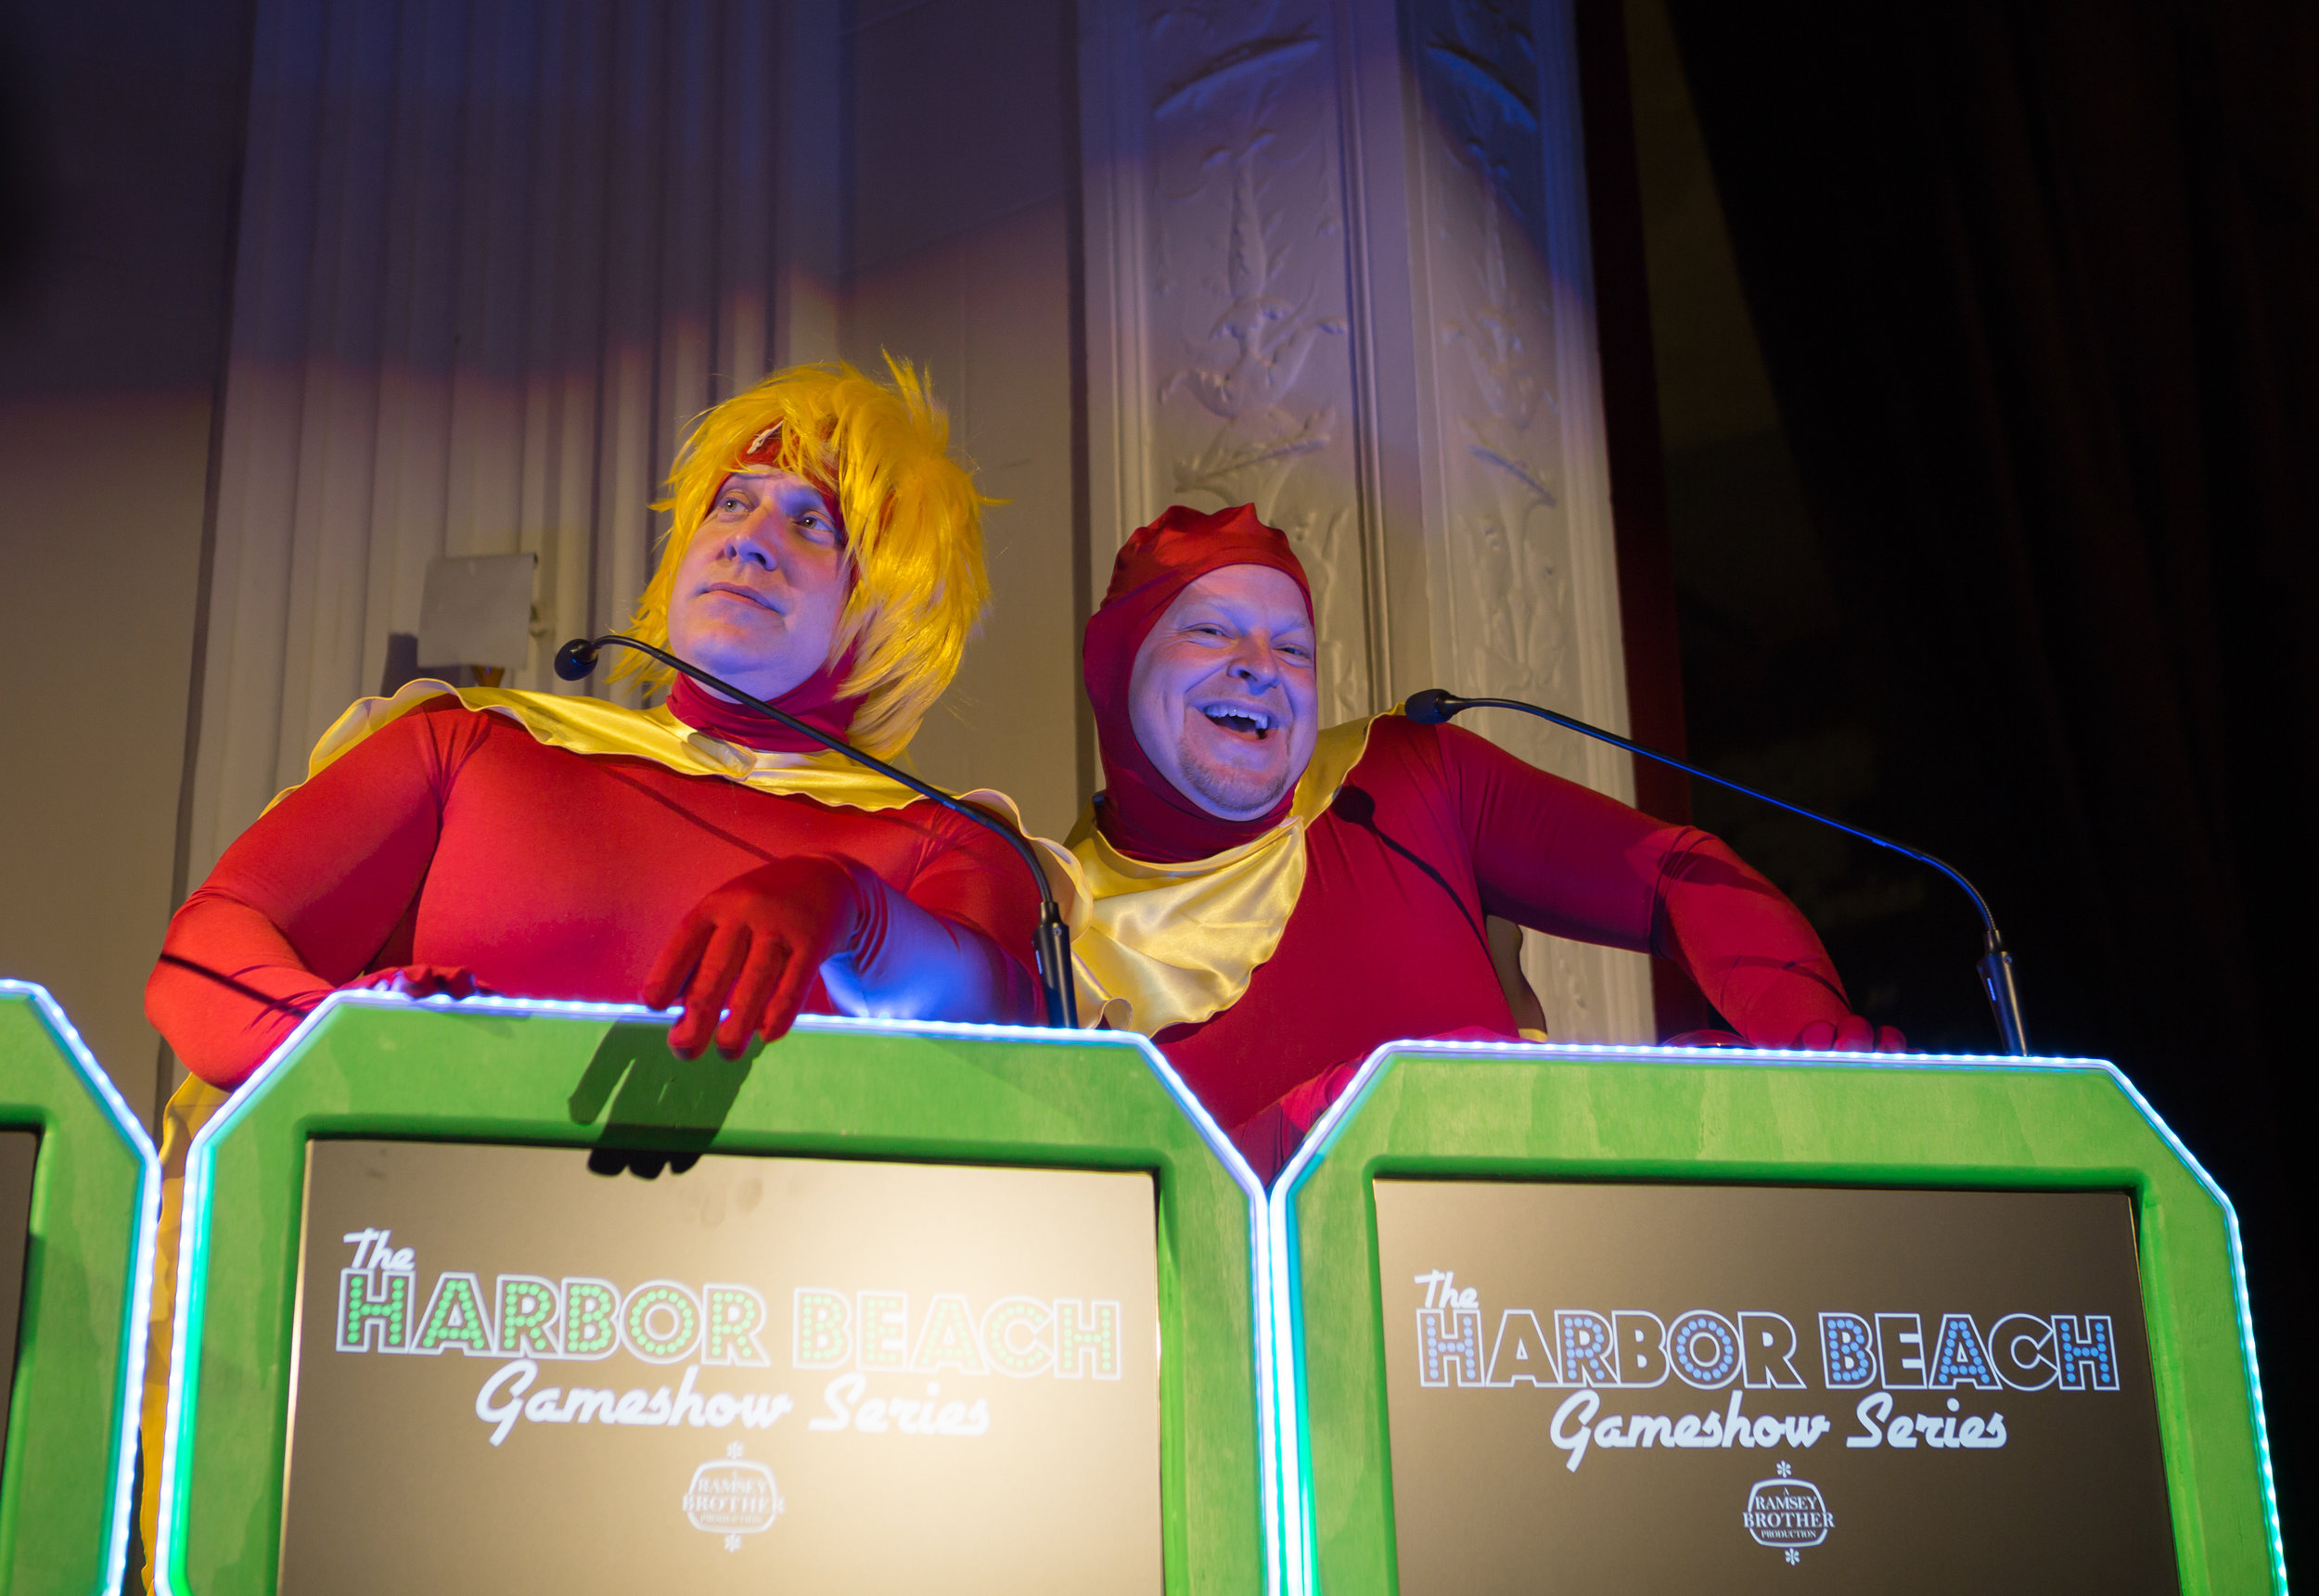 The world-famous Whammys made their debut at the 2017 Harbor Beach Gameshow Series. Ed Klump and Rob Little entertain the crowd in any wacky way possible.